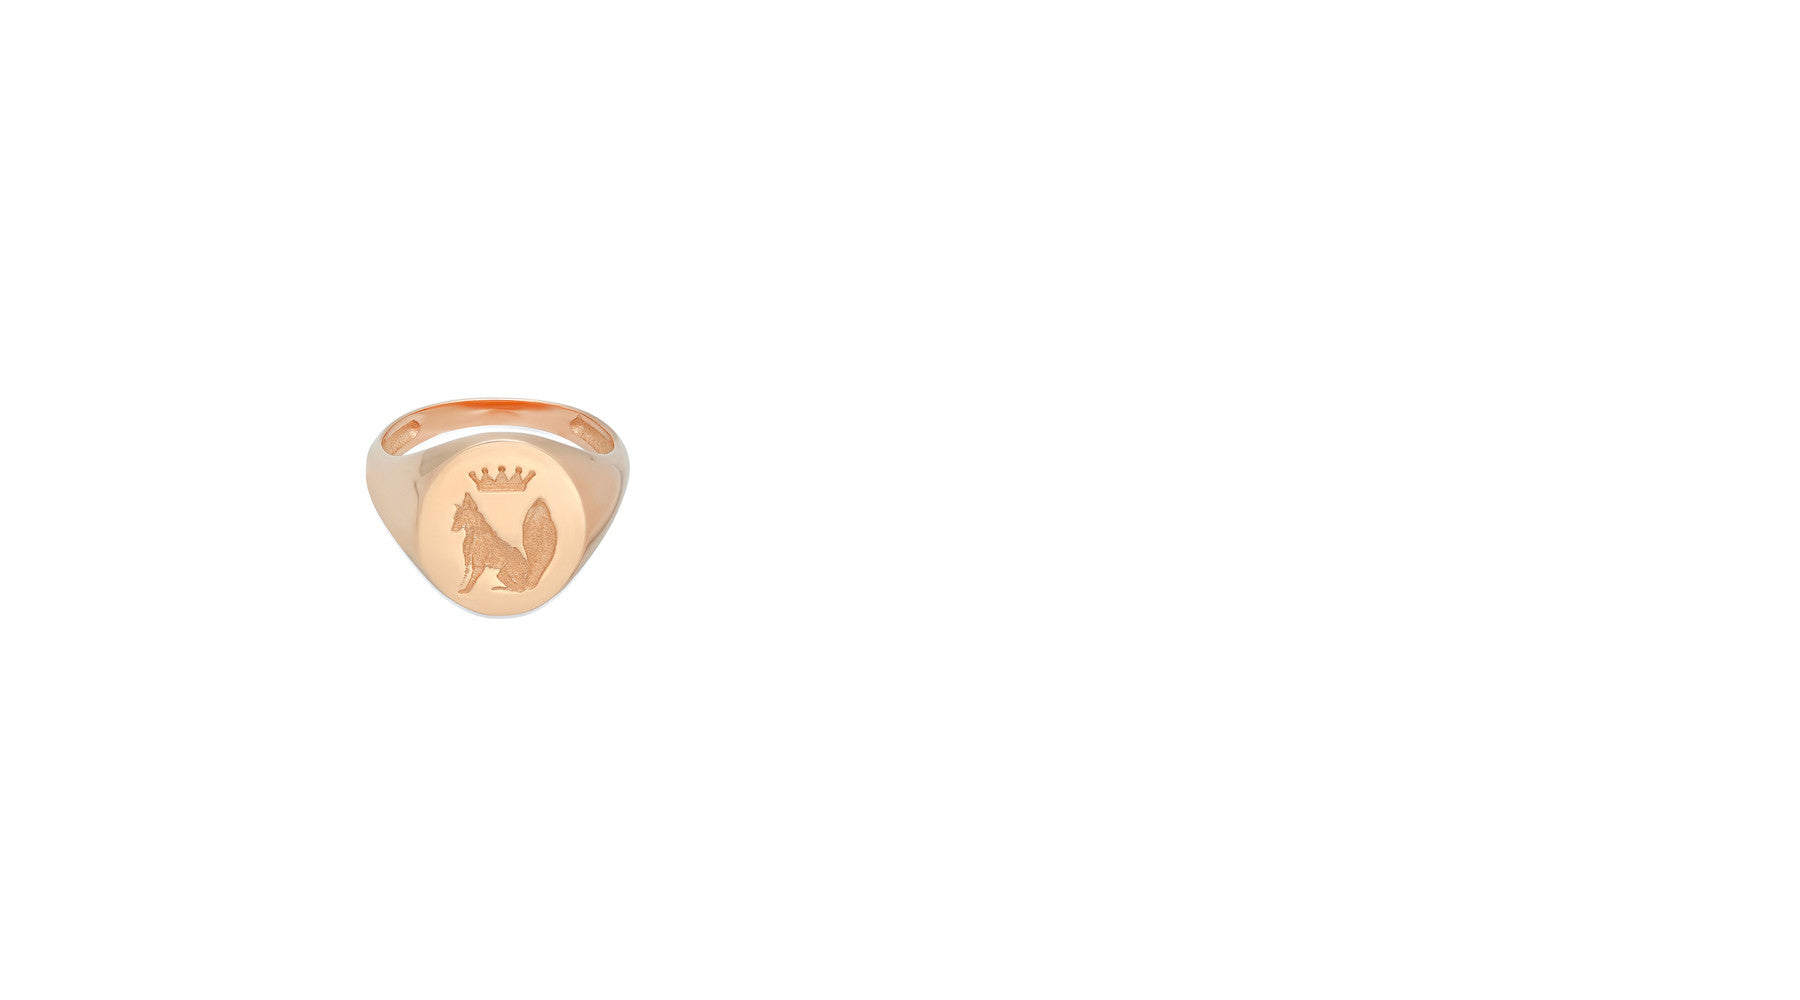 Stone Fox Bride x Iconery Gold Signette Fox Ring